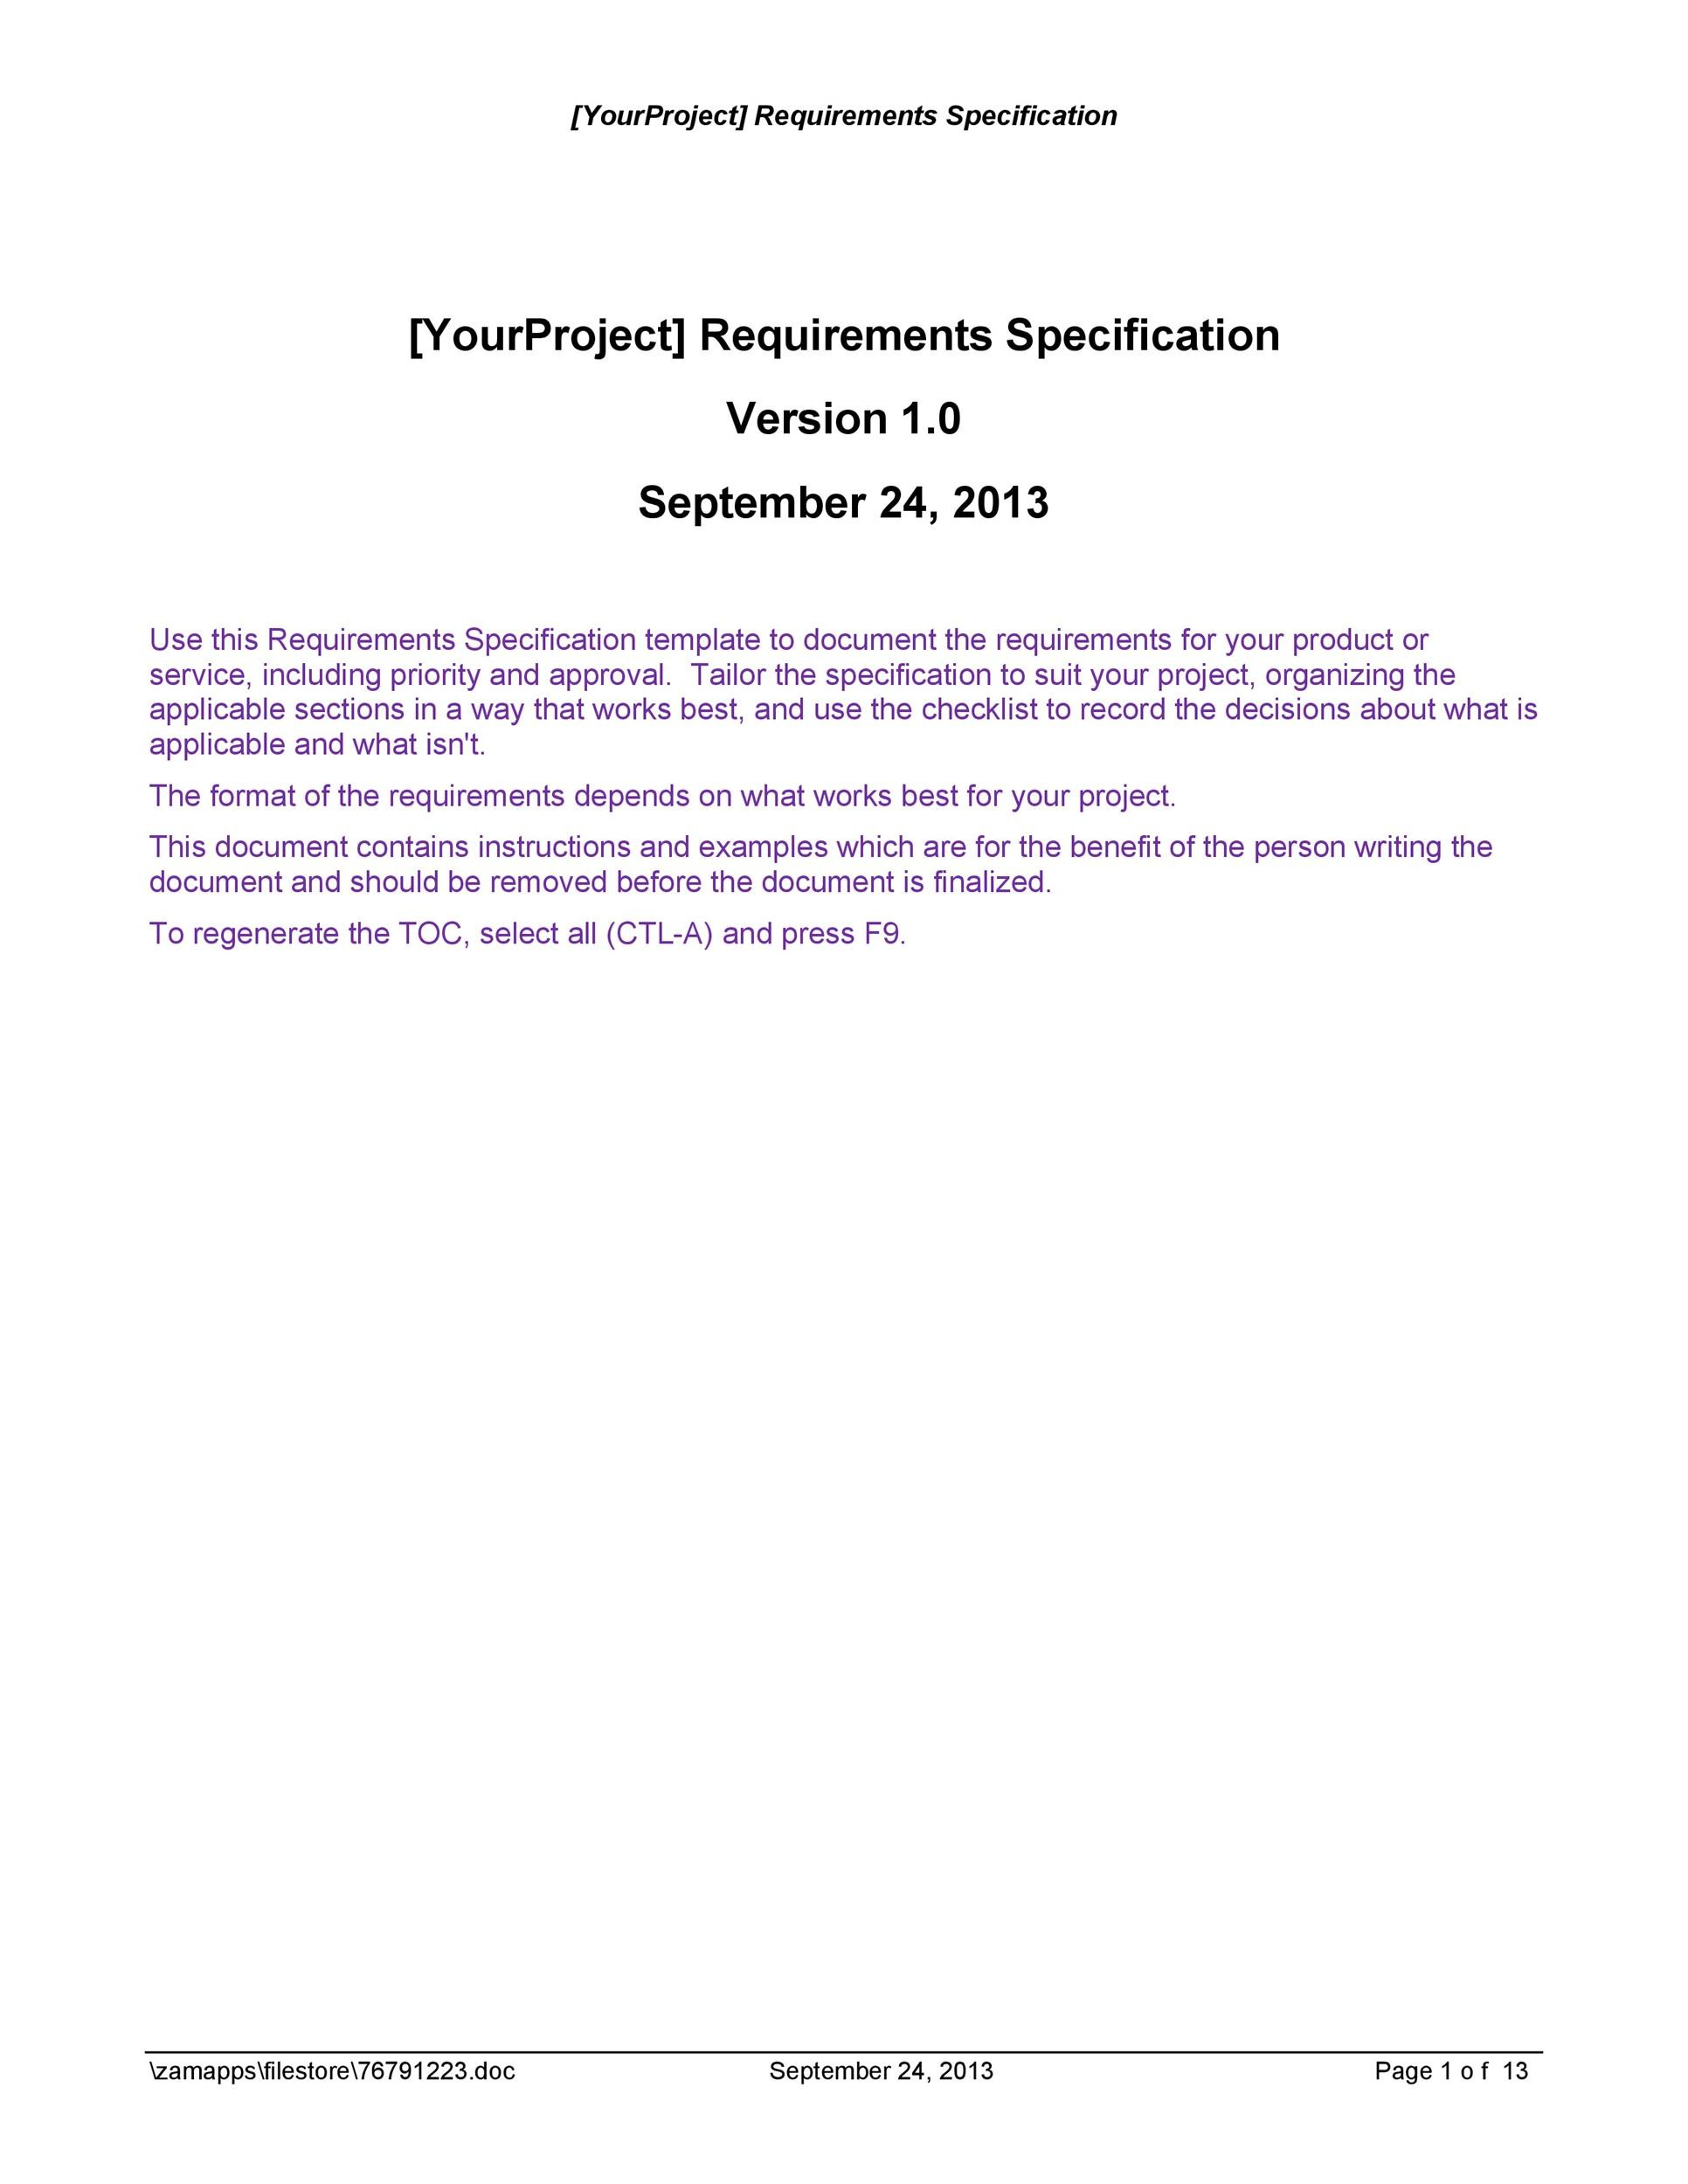 Report Documentation Template. 40 Simple Business Requirements Document  Templates ...